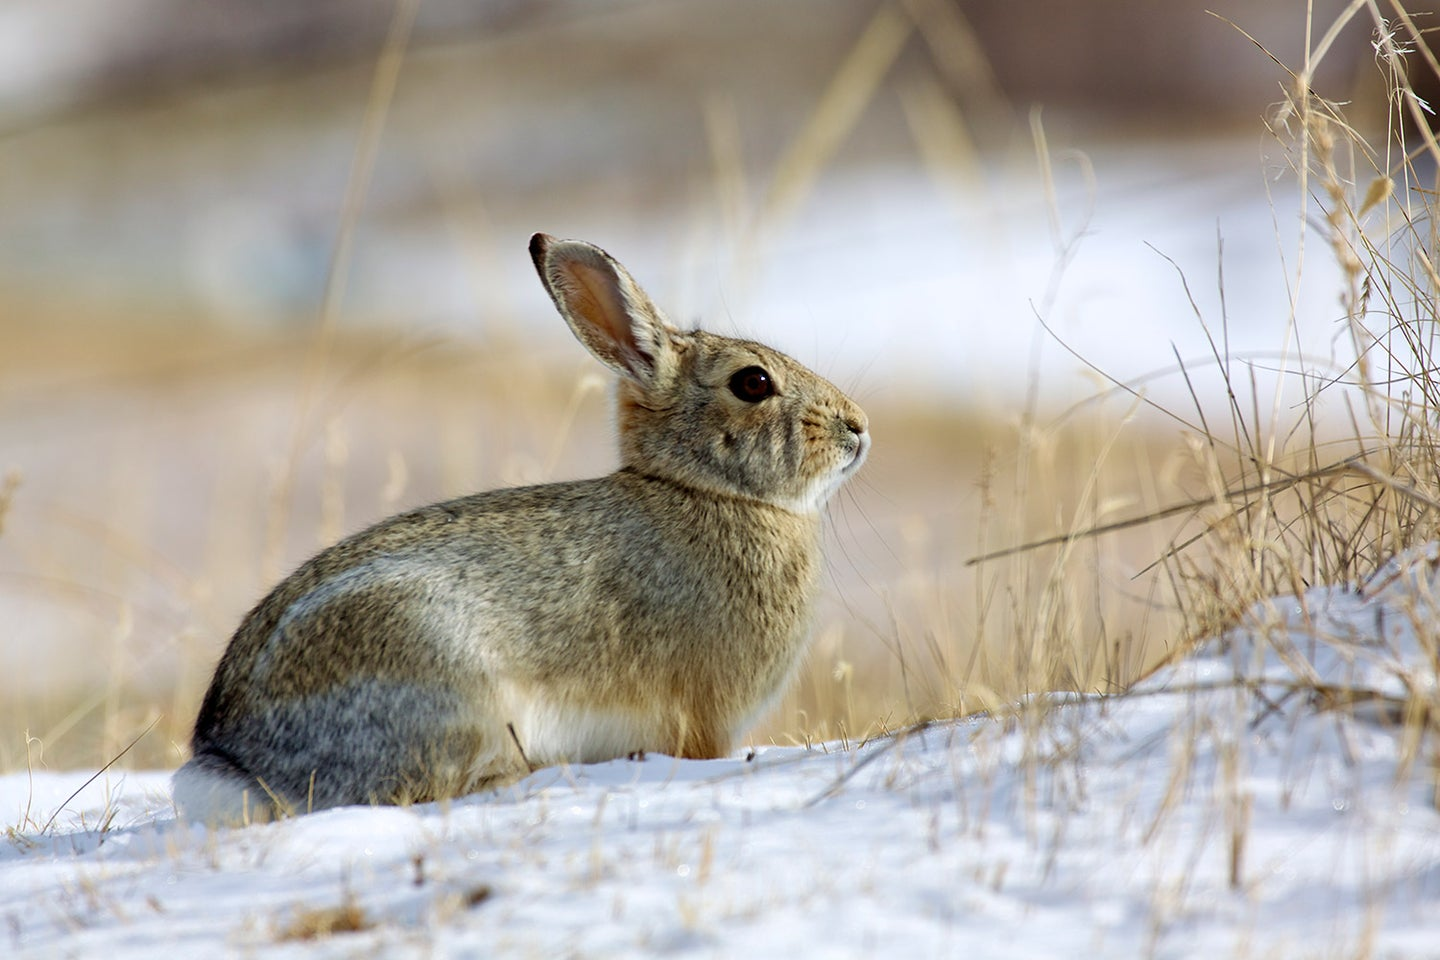 A cottontail rabbit ventures along a field edge after a dusting of snow.